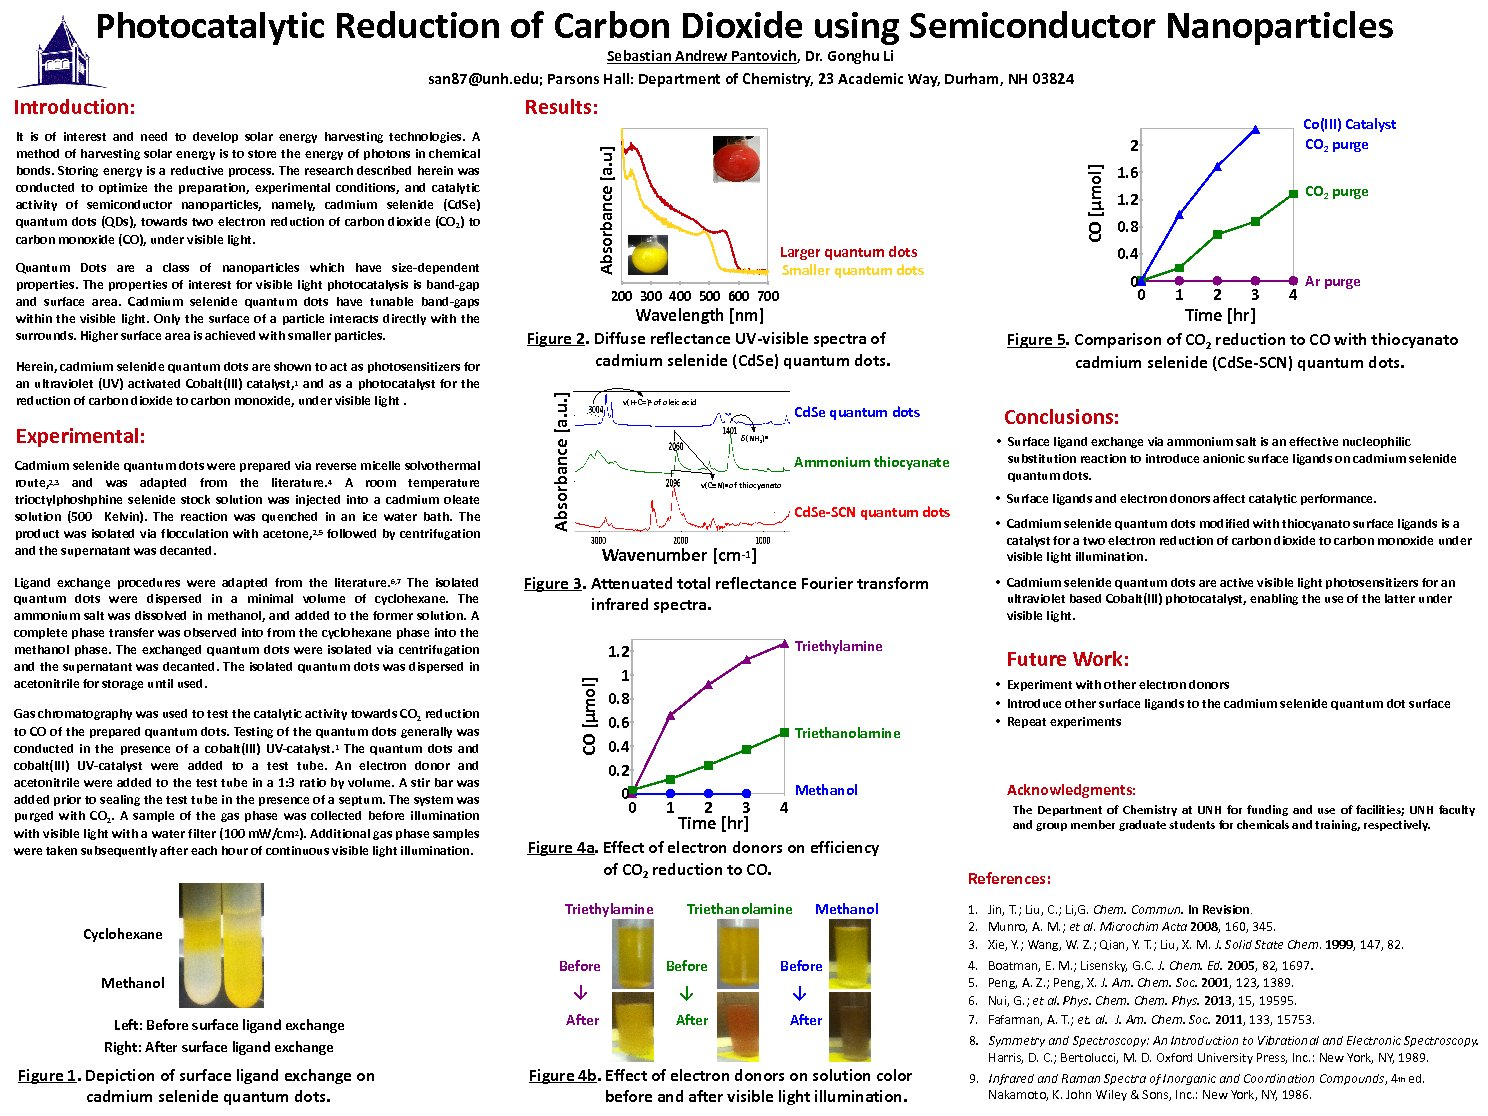 Photocatalytic Reduction Of Carbon Dioxide Using Semiconductor Nanoparticles by san87